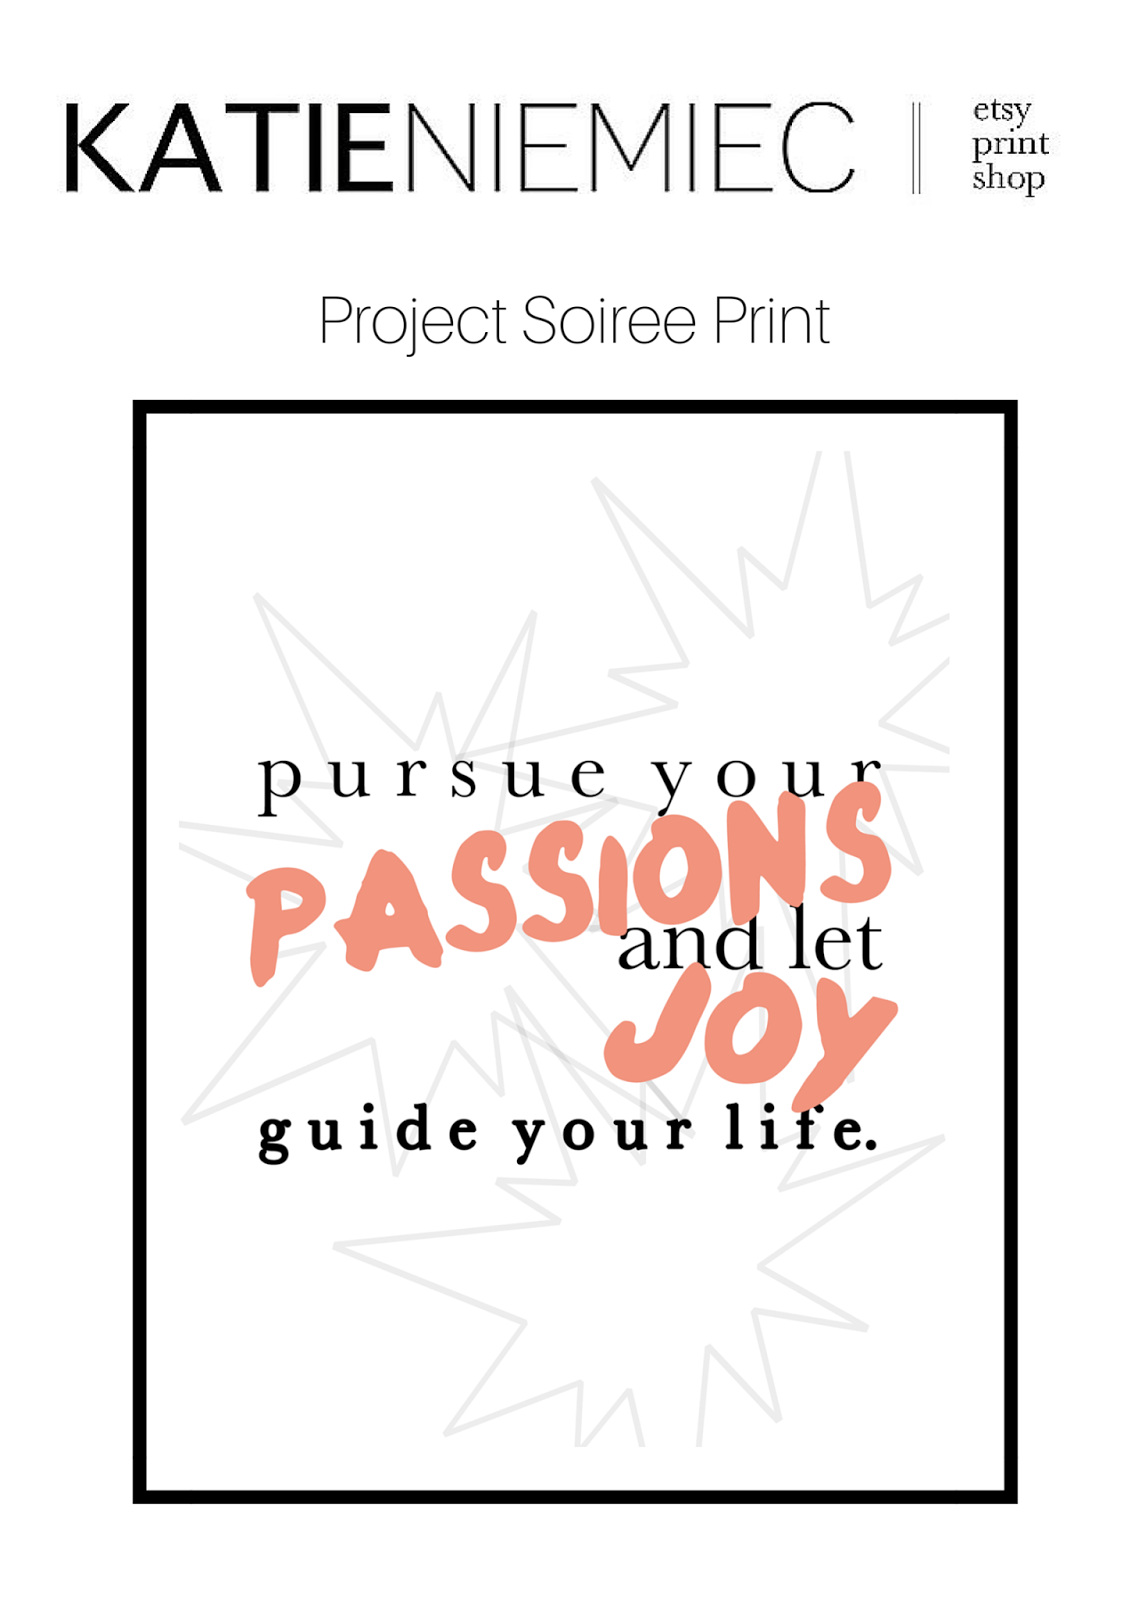 Katie Niemiec Etsy, Print, Project Soiree, Quote